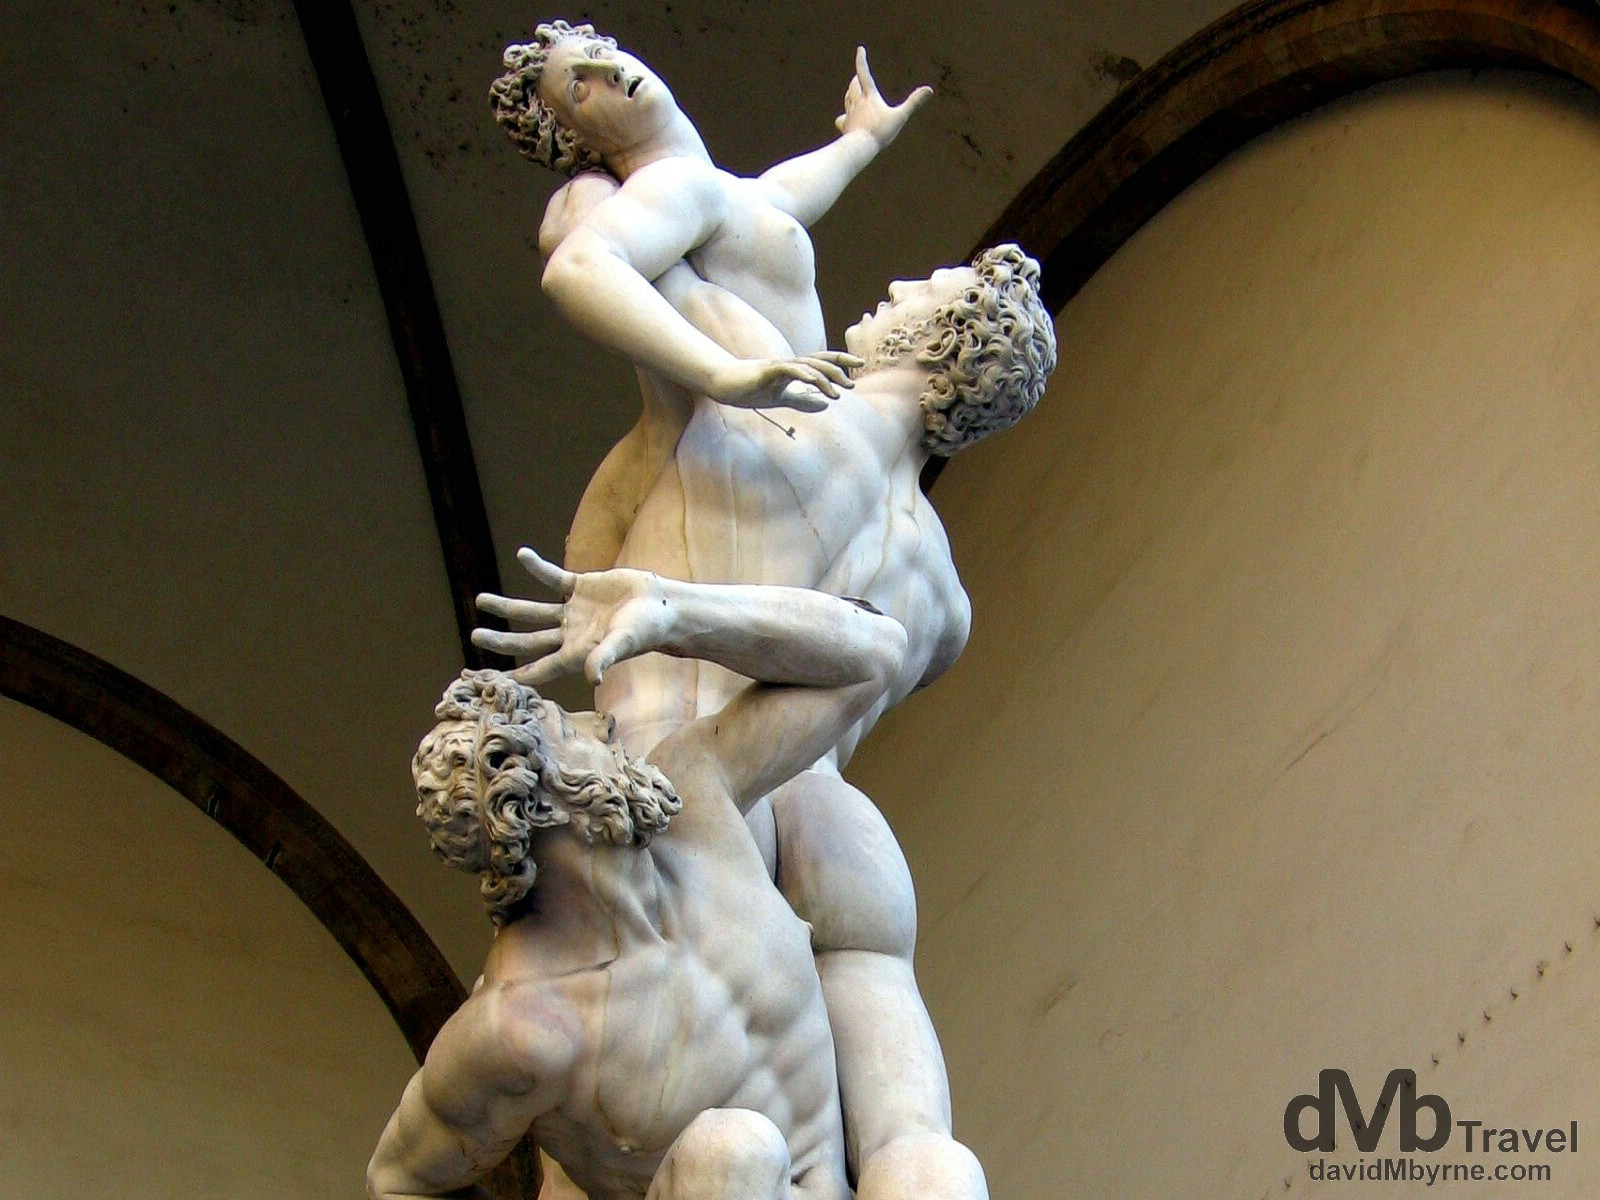 The sculpture 'Rape of the Sabine Women' in the Loggia della Signoria, Florence, Tuscany, Italy. August 28th, 2007.